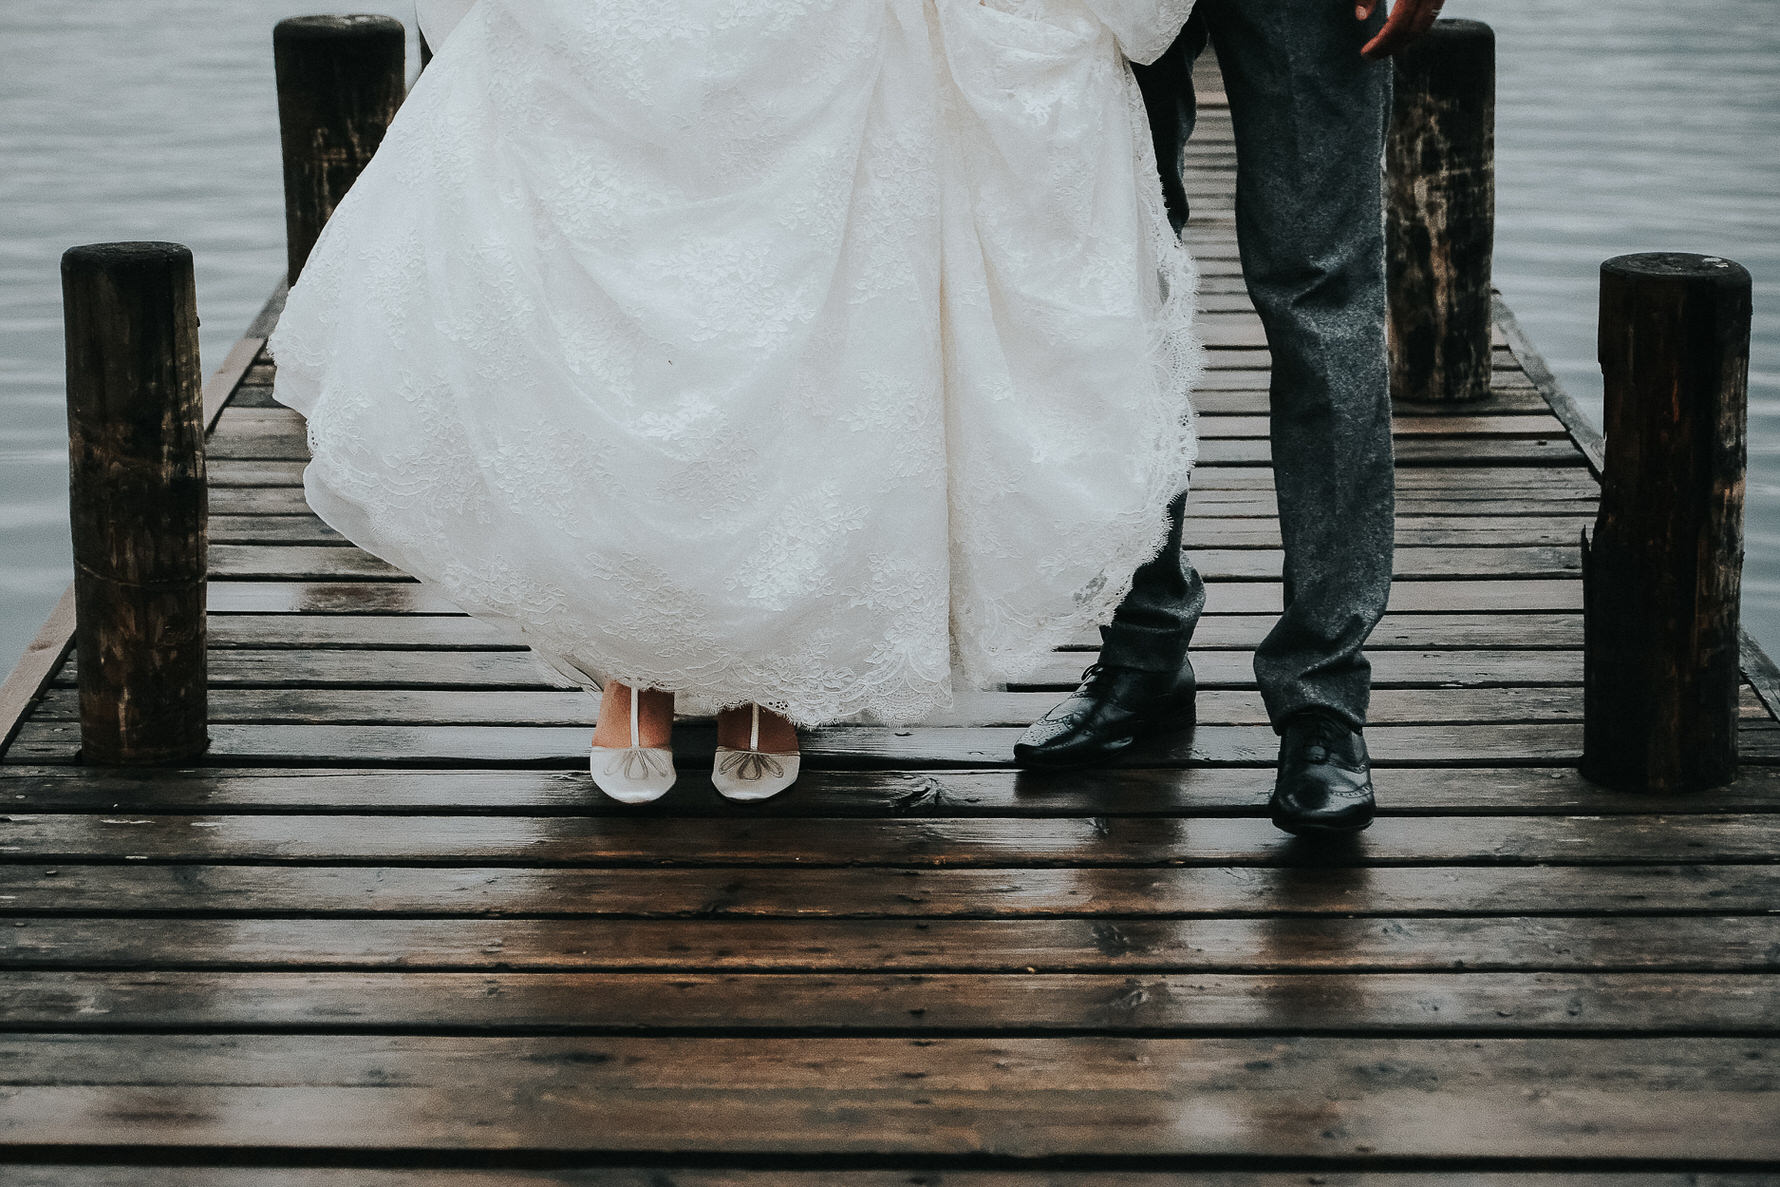 Cheshire Documentary Wedding Photography at Low Wood Bay